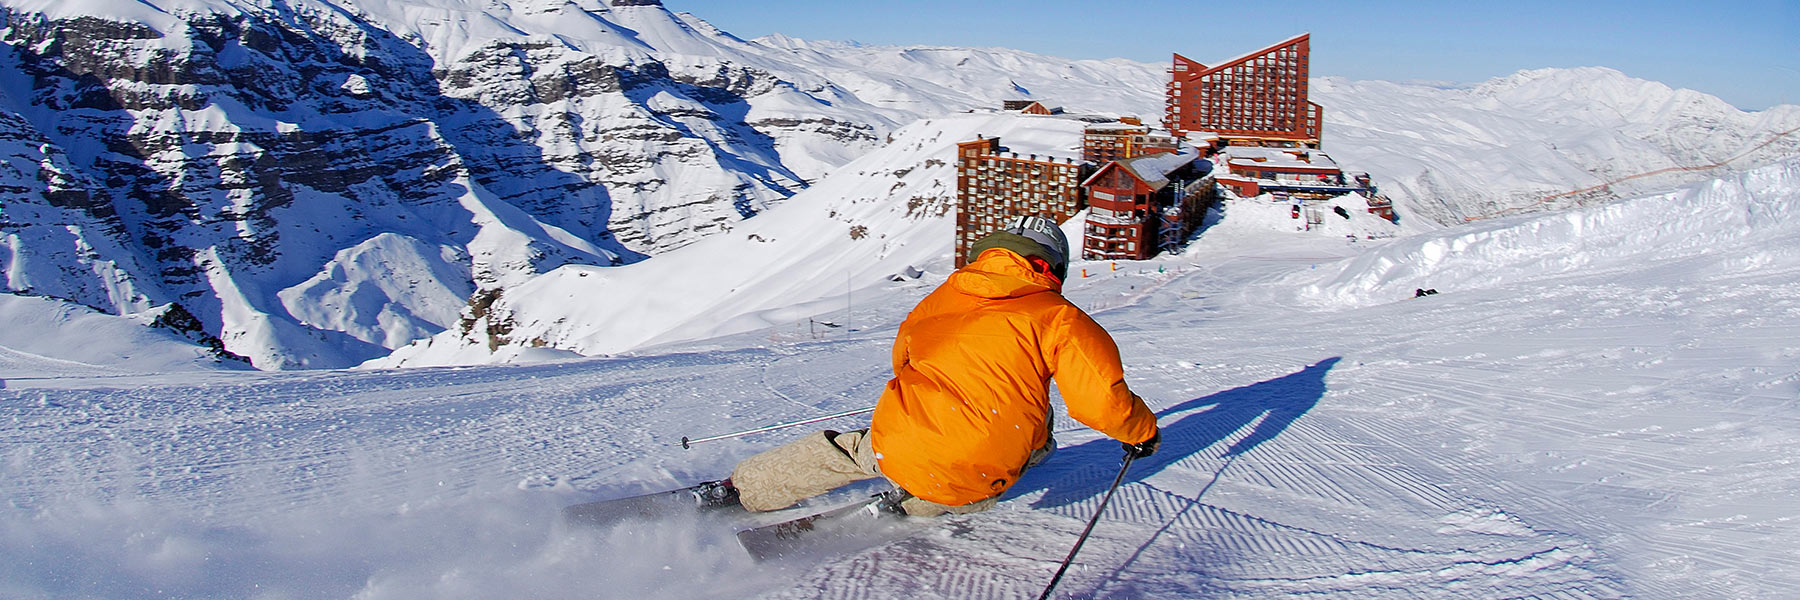 Valle Nevado, Chile Ski Vacation: Save 15% off all Ski Weeks at Valle Nevado when you book Delta flights!